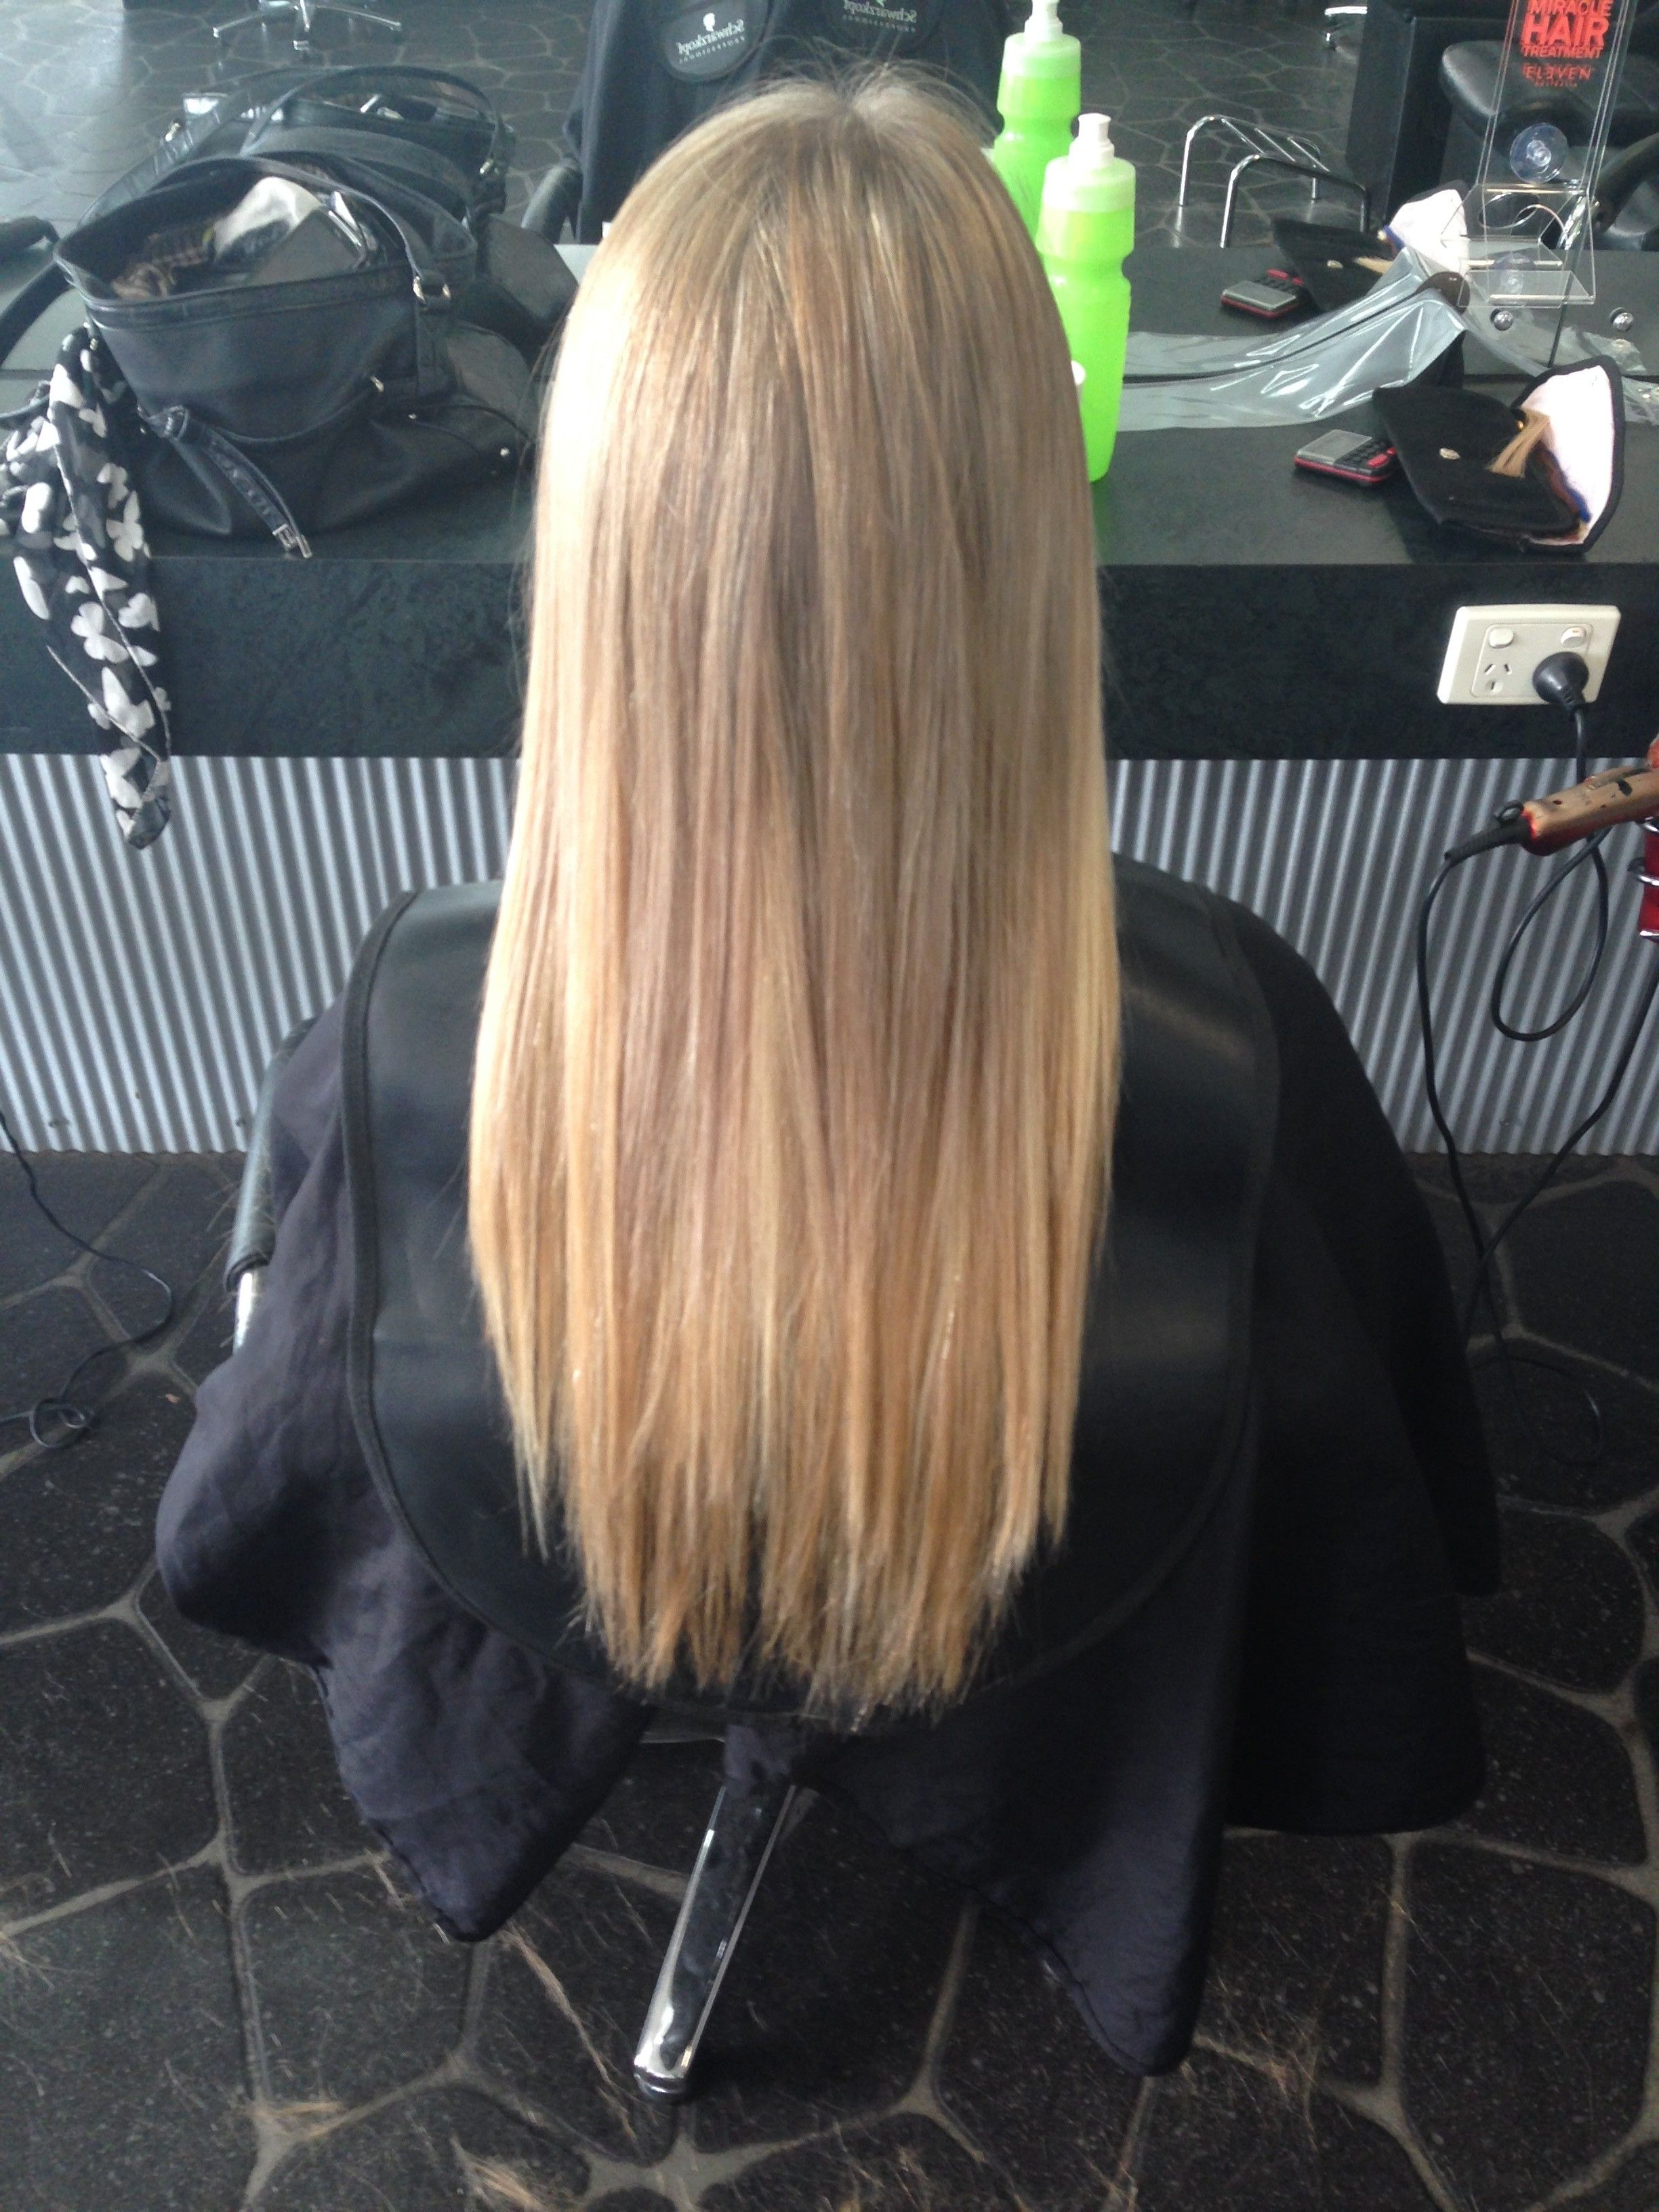 Human Hair Extension Provides Different Services Like Foiling